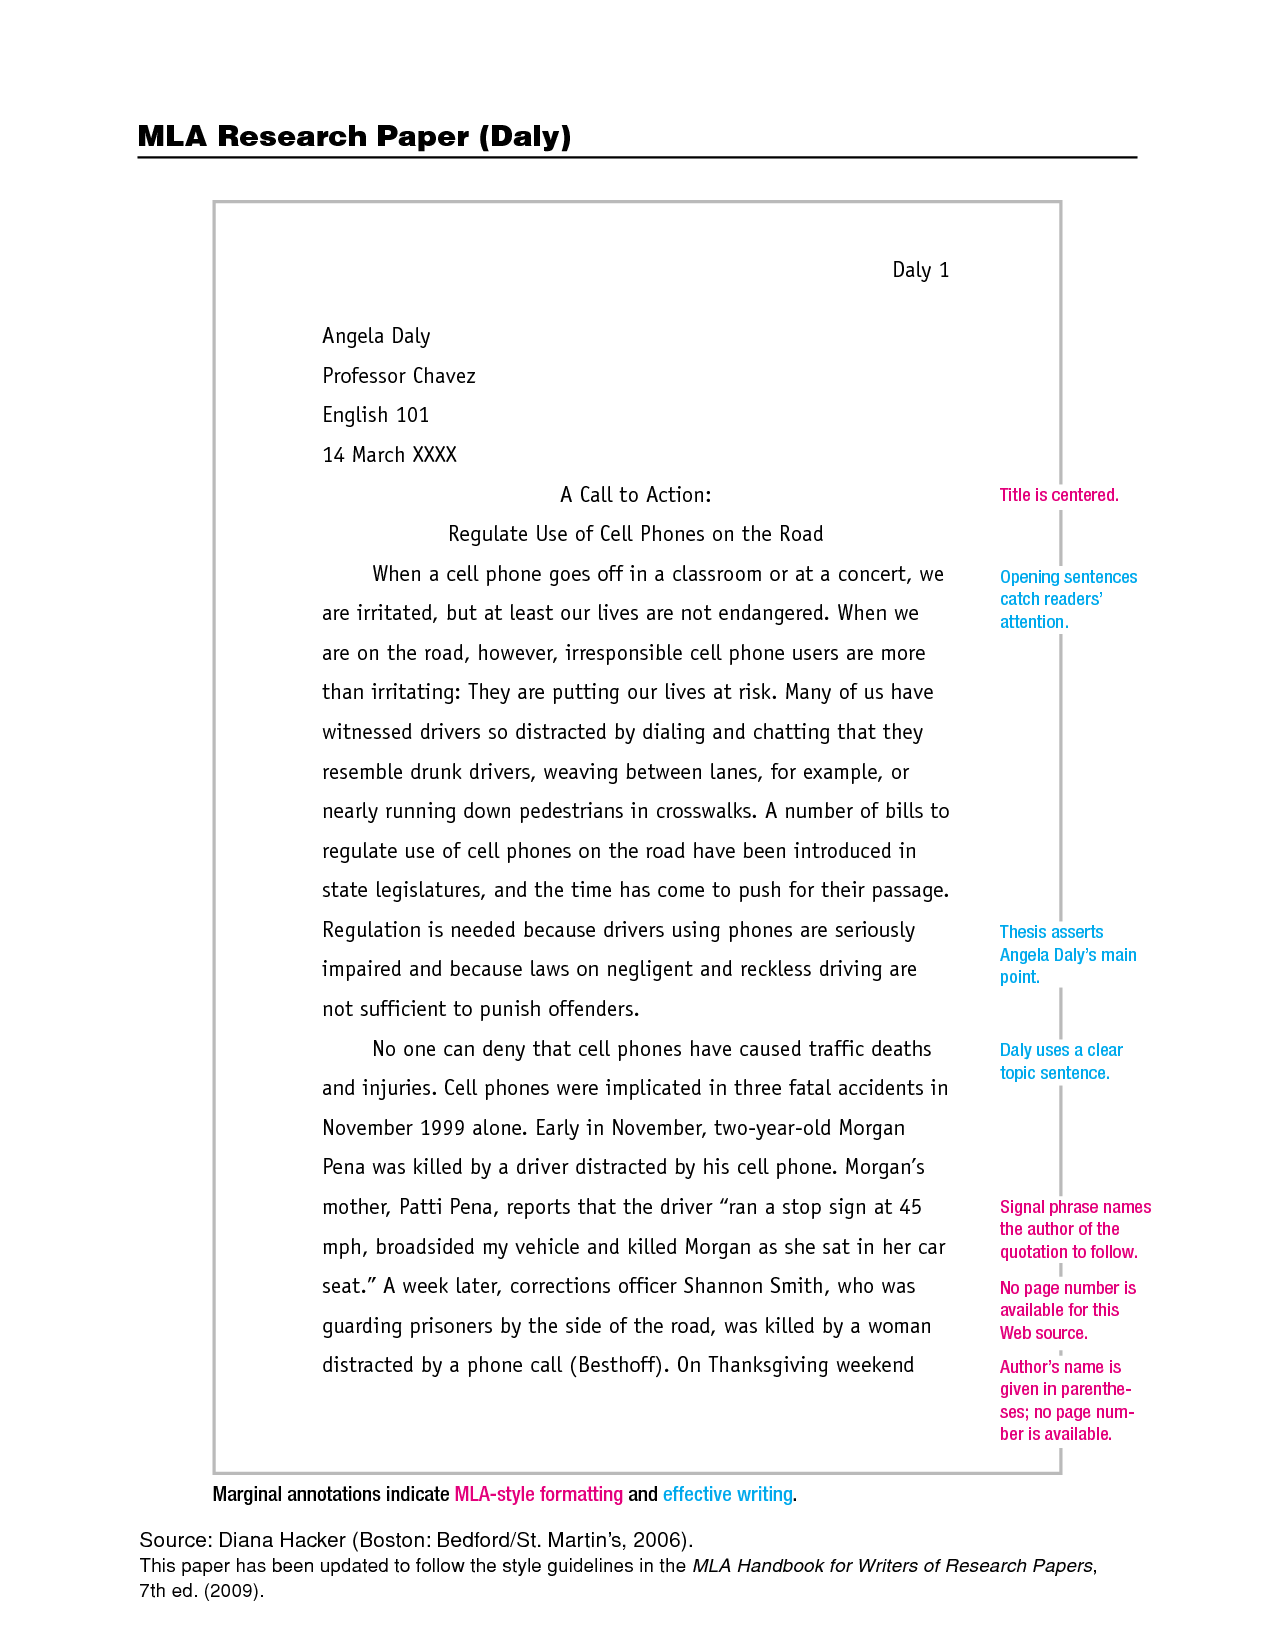 001 Research Paper Mla Format For Best Papers Title Page Citation Outline Full